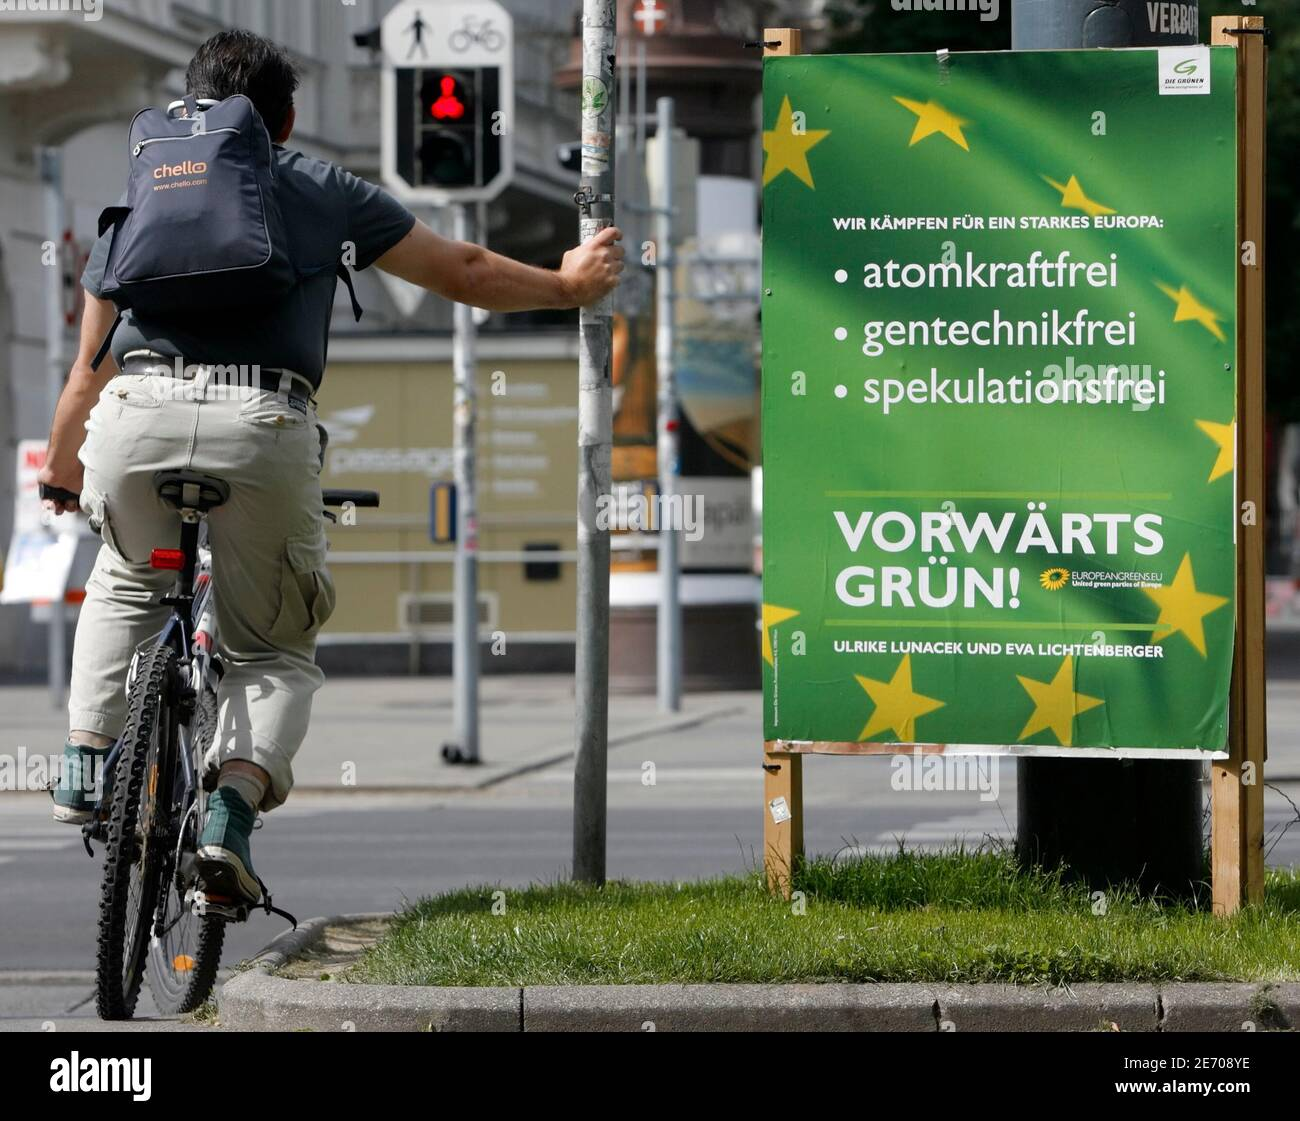 """A cyclist waits next to a Green party election campaign poster in Vienna May 22, 2009. """"Wir kaempfen fuer ein starkes Europa: Atomkraftfrei, gentechnikfrei, spekulationsfrei"""" reads """"We fight for a strong Europe: Without nuclear power, genetic engineering or speculation"""", """"Vorwaerts Gruen!"""" reads """"Green ahead!"""". REUTERS/Heinz-Peter Bader  (AUSTRIA POLITICS ELECTIONS) Stock Photo"""